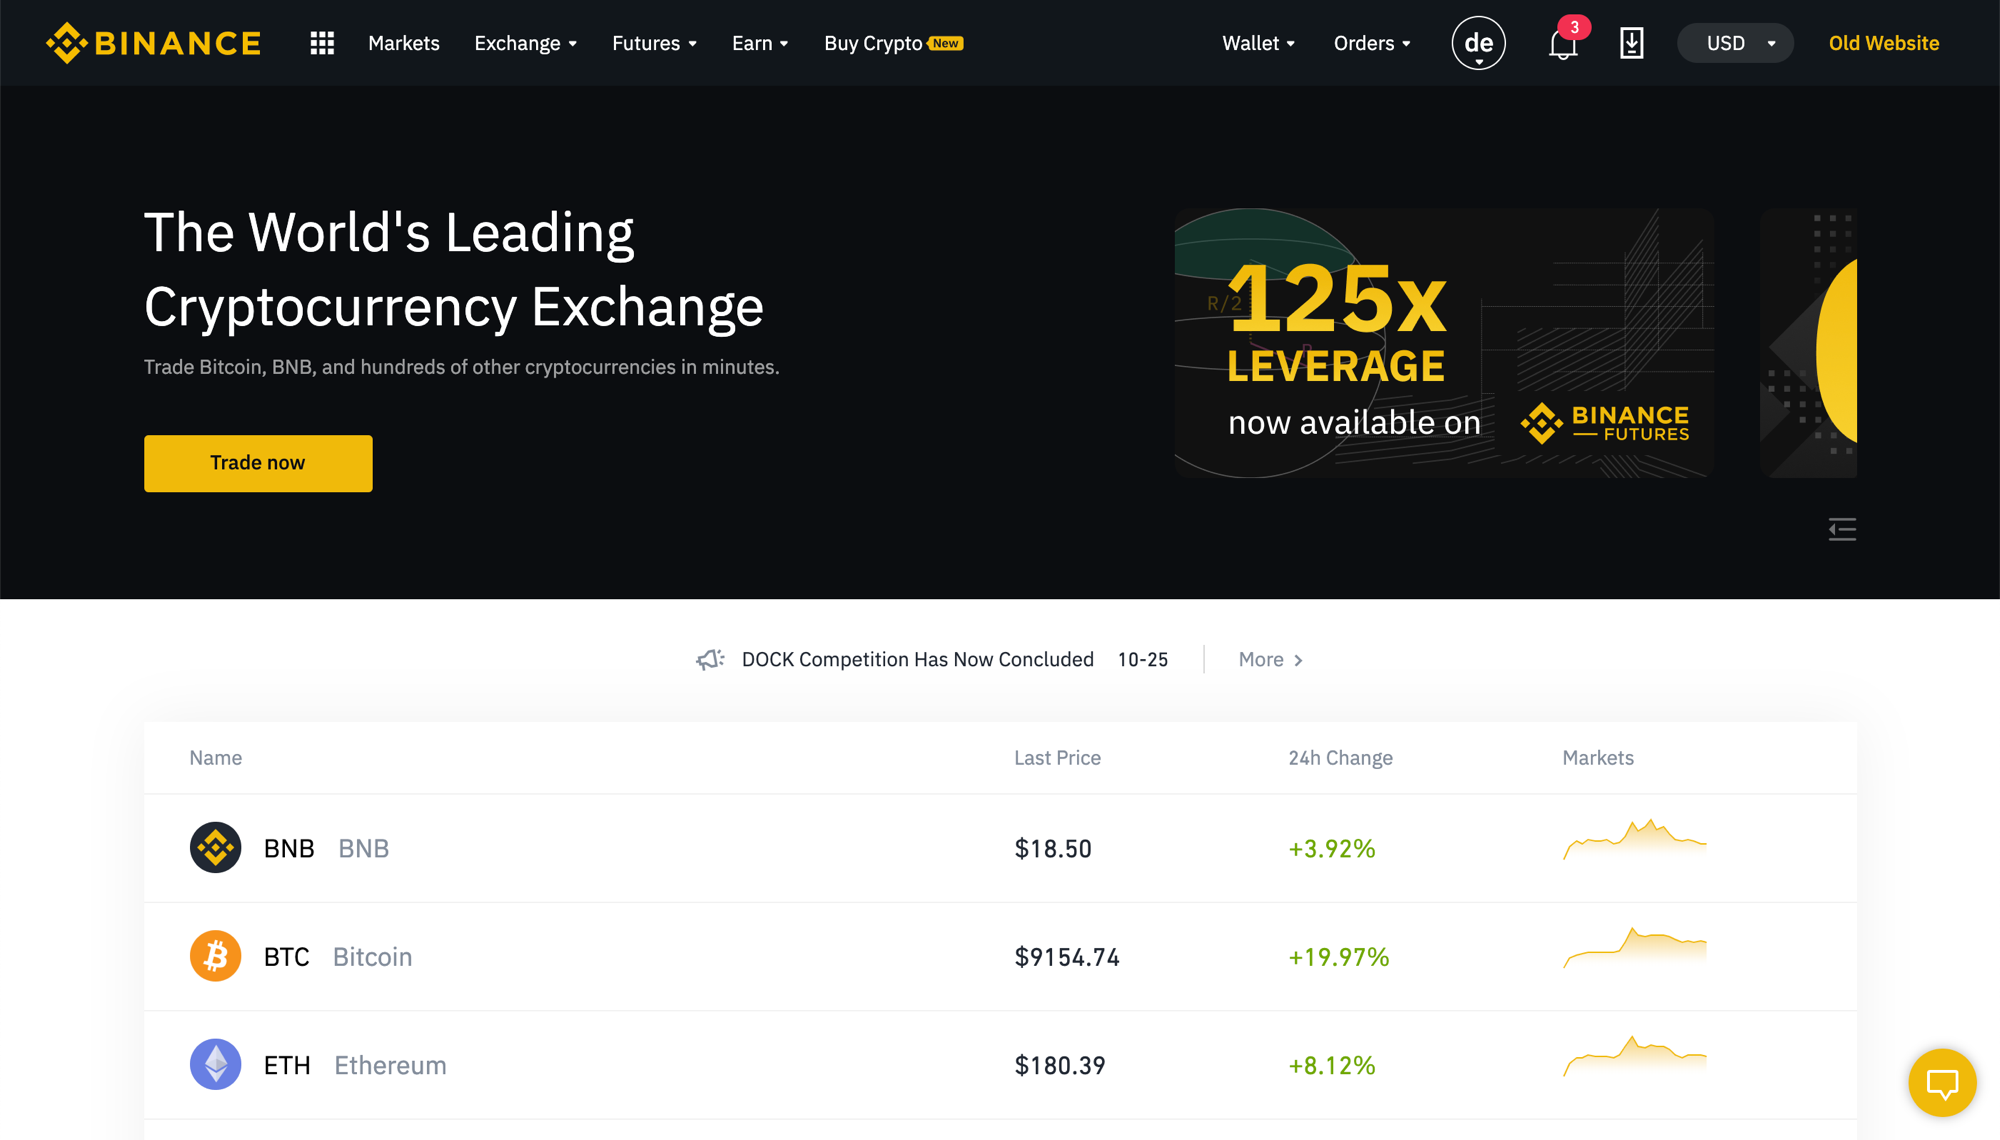 Best Bitcoin Exchanges In The World For Trading Bitcoins [Updated List]